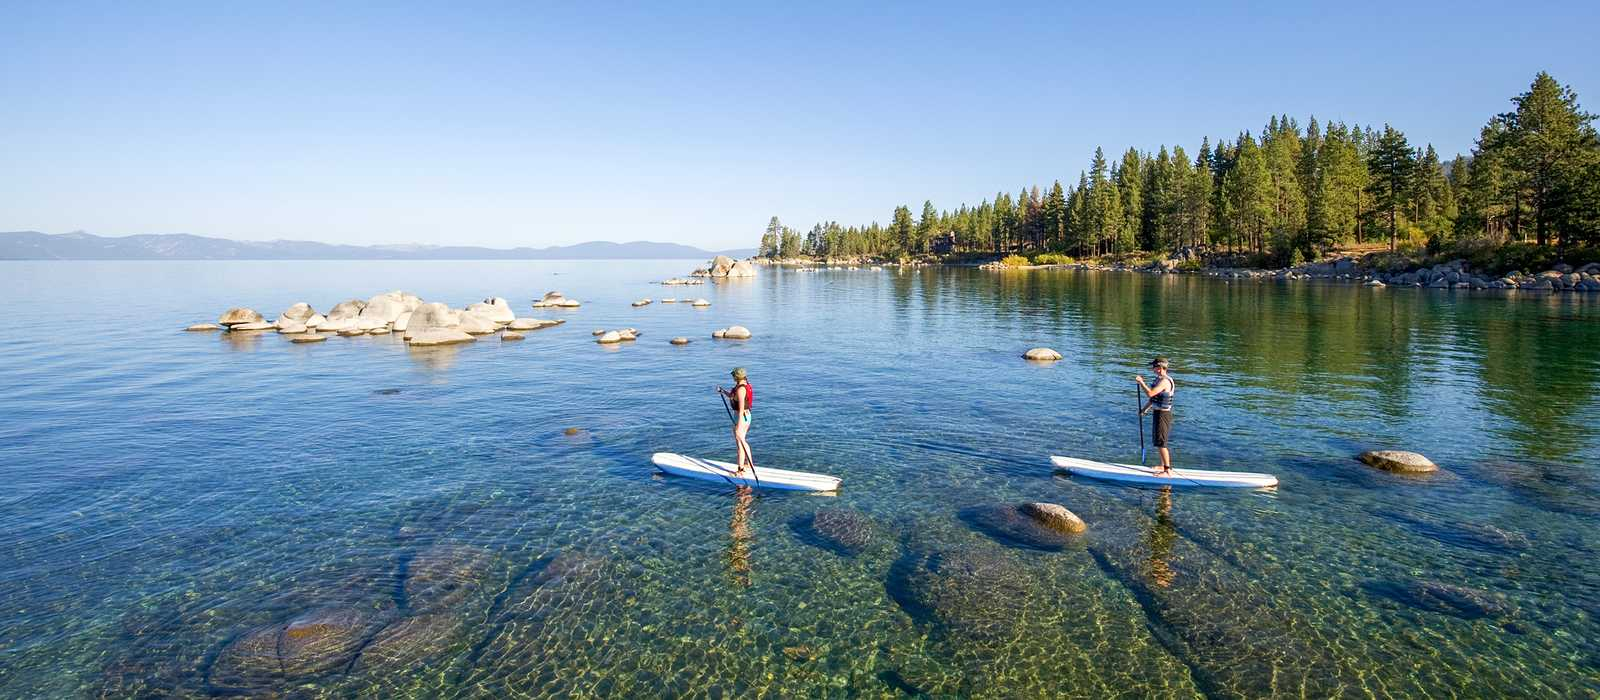 Die Zephyr Cove am Lake Tahoe in den USA